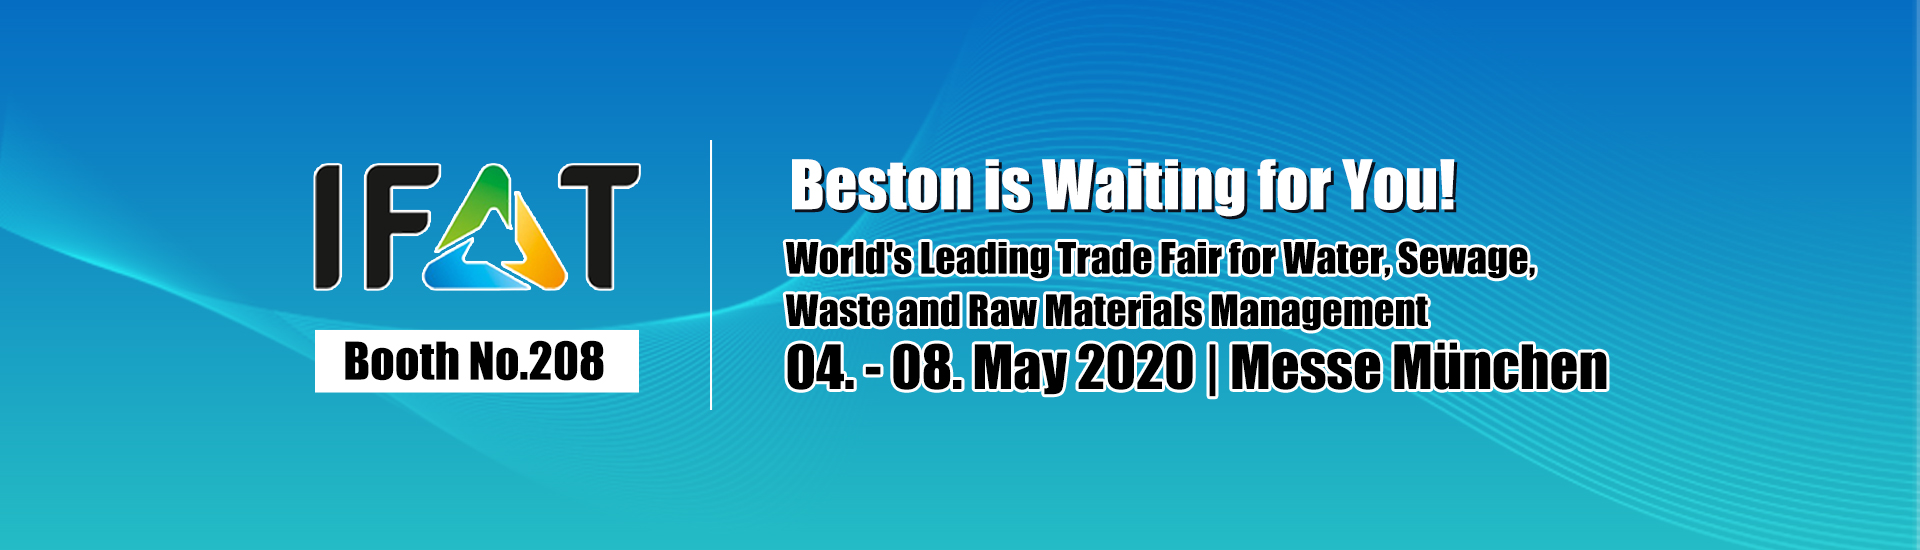 Meet Beston on IFAT 2020 Munich